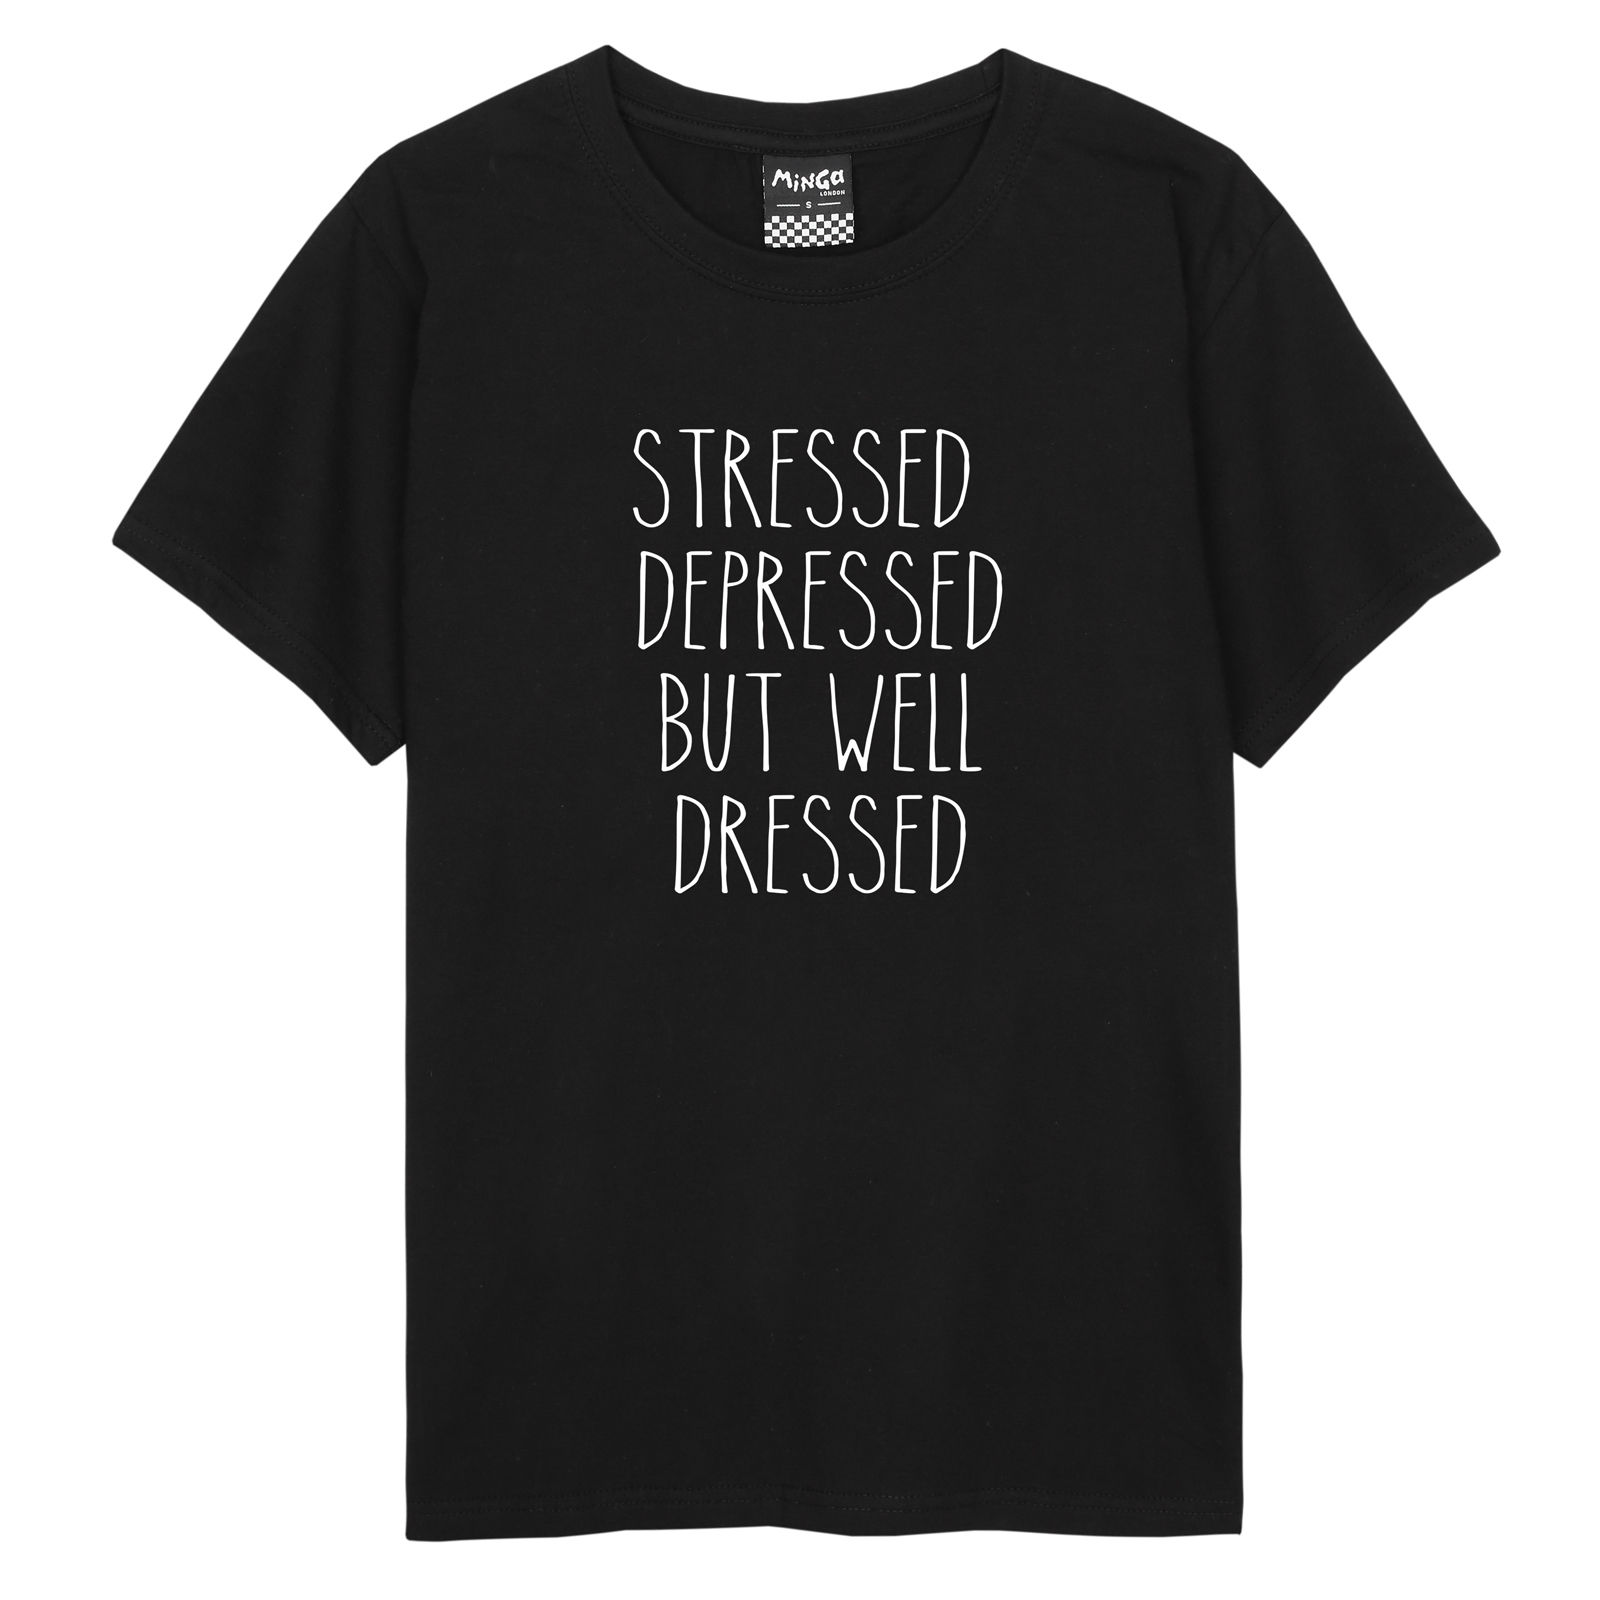 STRESSED DEPRESSED BUT WELL DRESSED T SHIRT HIGH WOMENS FUNNY QUOTE TUMBLR SWAG Printed T-Shirt Charming Tops Tee